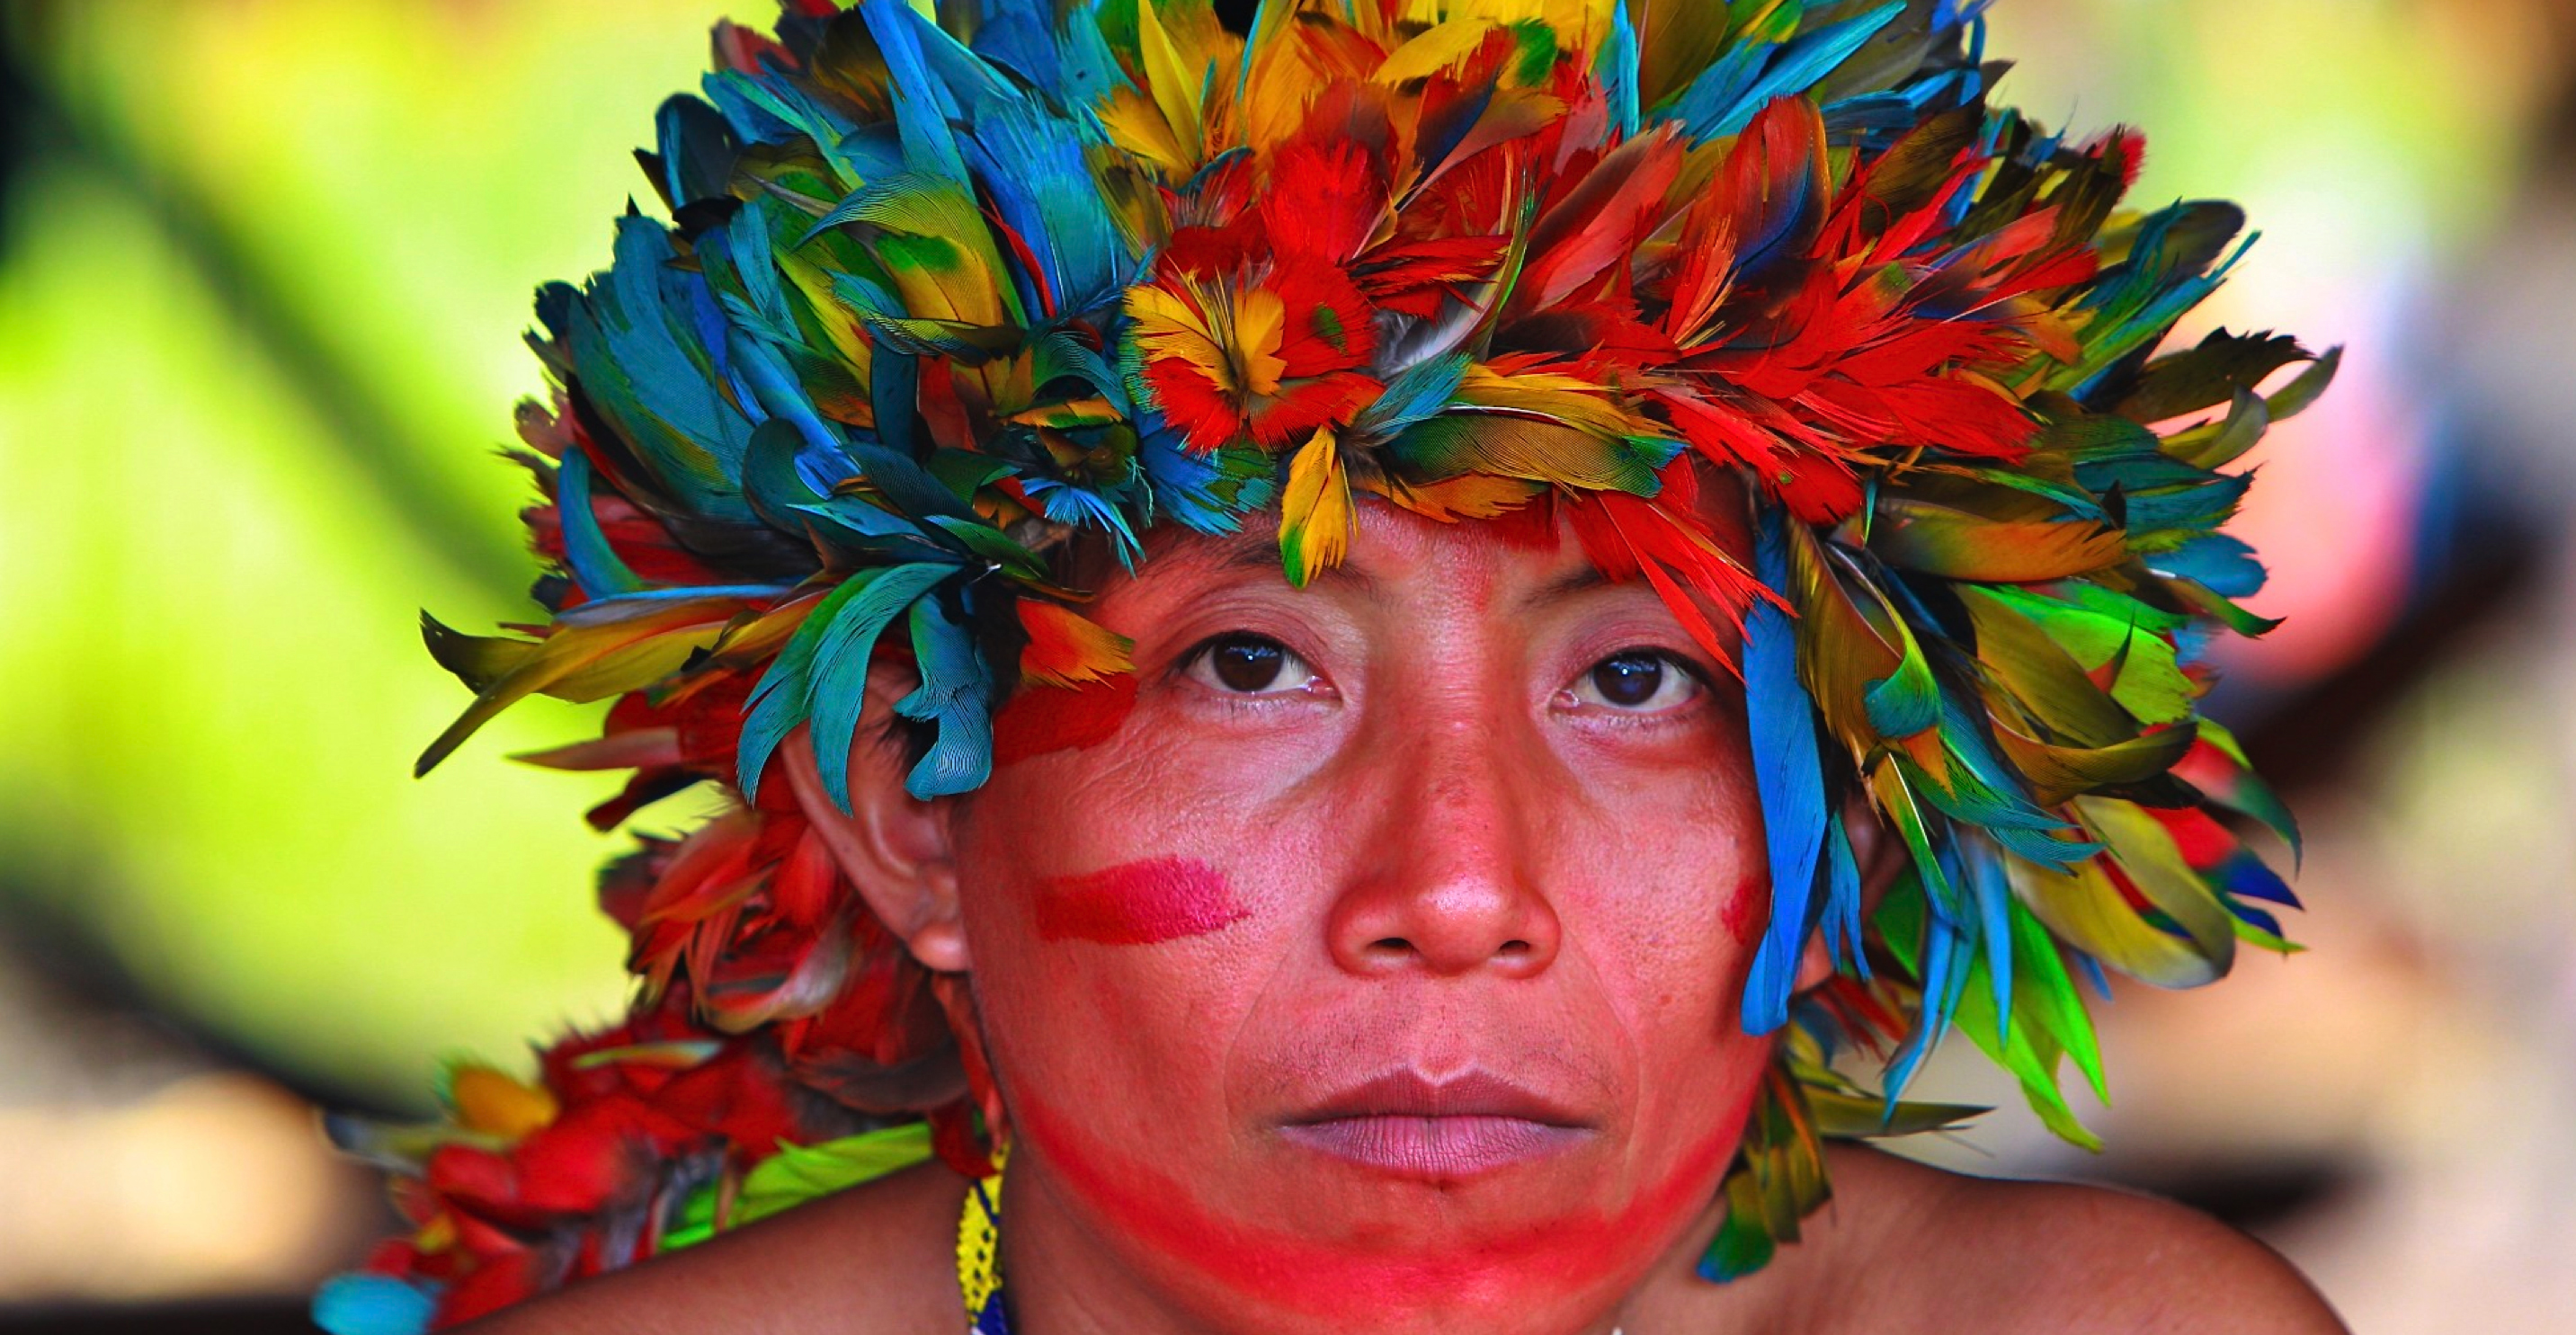 Photo © José Manuel Fragoso | Indigenous from Rupununi region of Guyana